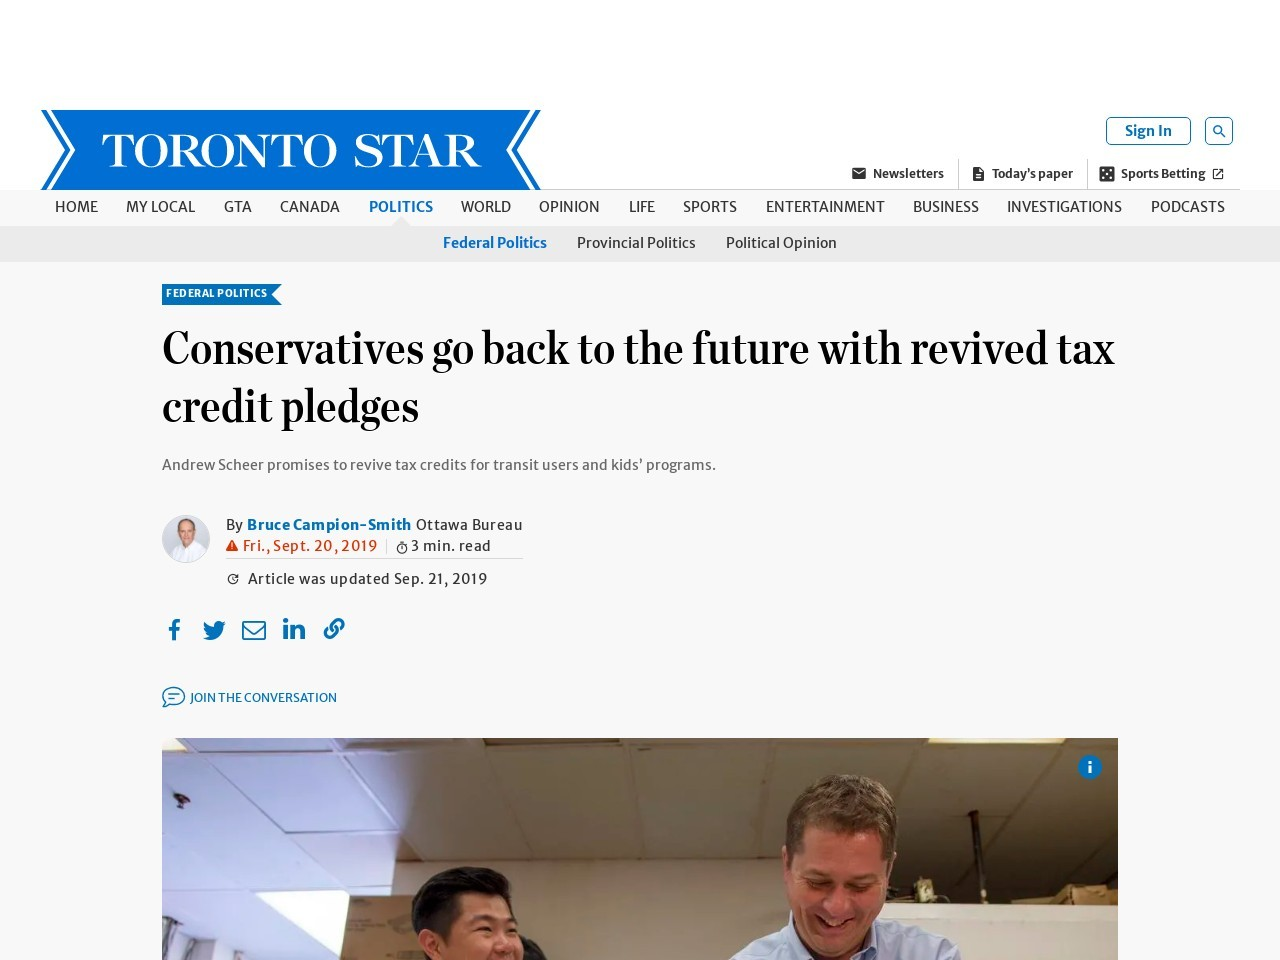 Conservatives go back to the future with revived tax credit pledges